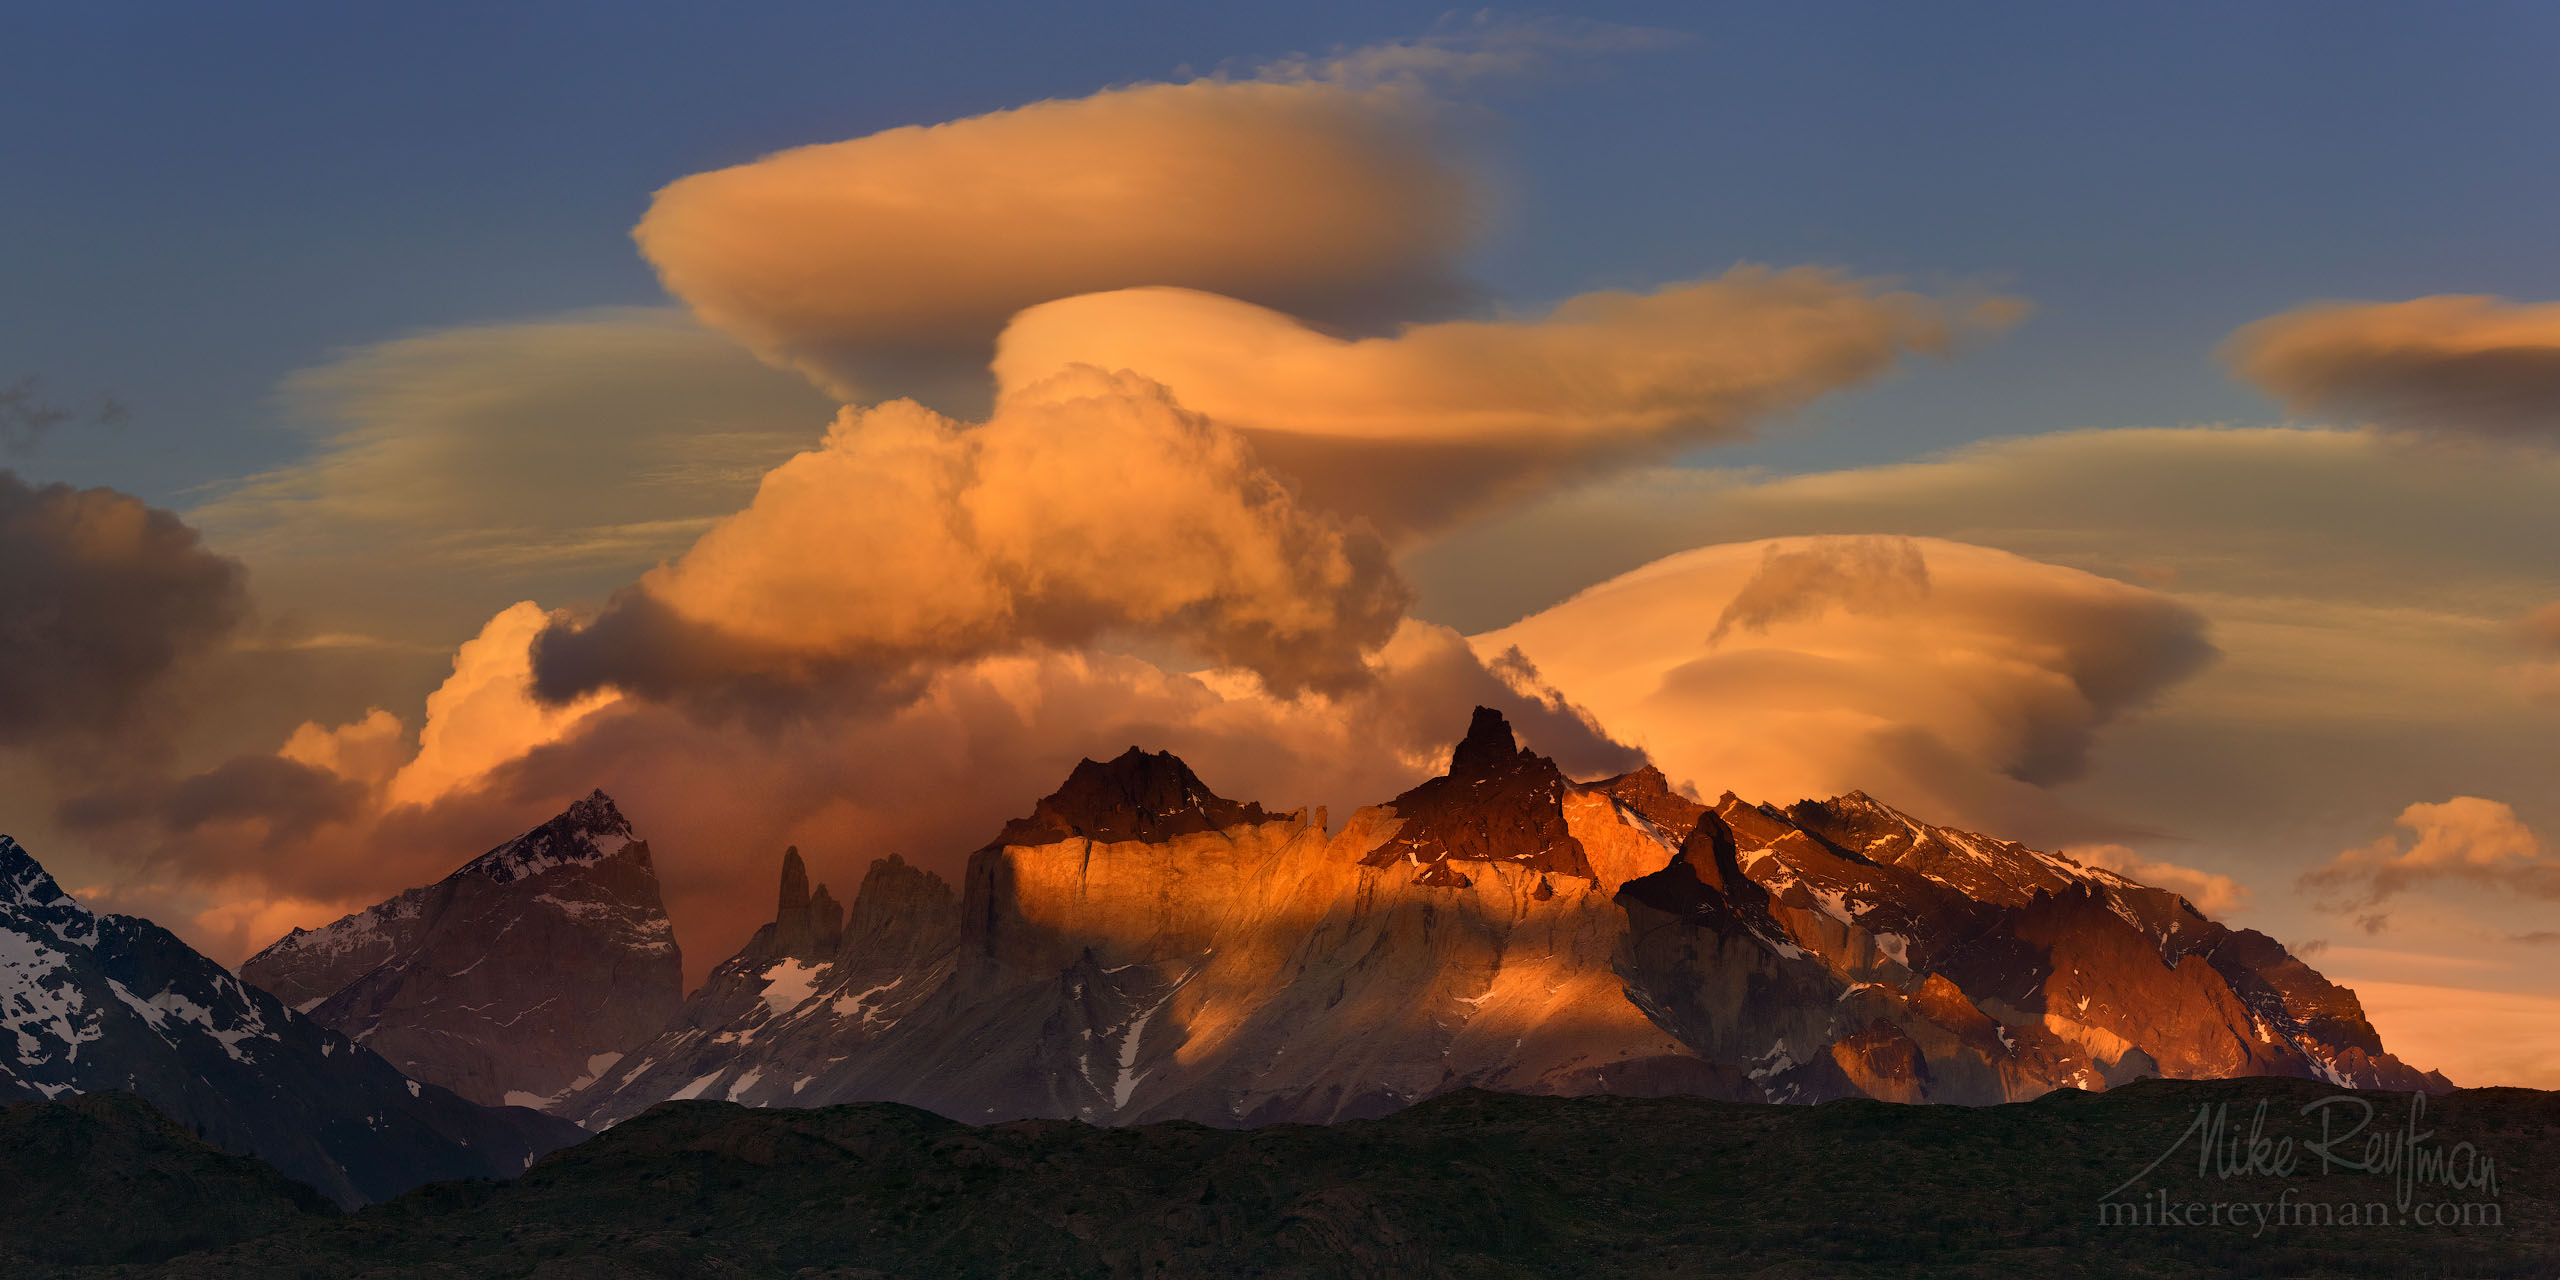 Crazy clouds over Cordillera del Paine. Torres del Paine National Park, Ultima Esperanza Province, Magallanes and Antartica Chilena Region XII, Patagonia, Chile. P12-MRD8C7712-16-Pano - Selected panoramic images with 2:1 aspect ratio - Mike Reyfman Photography